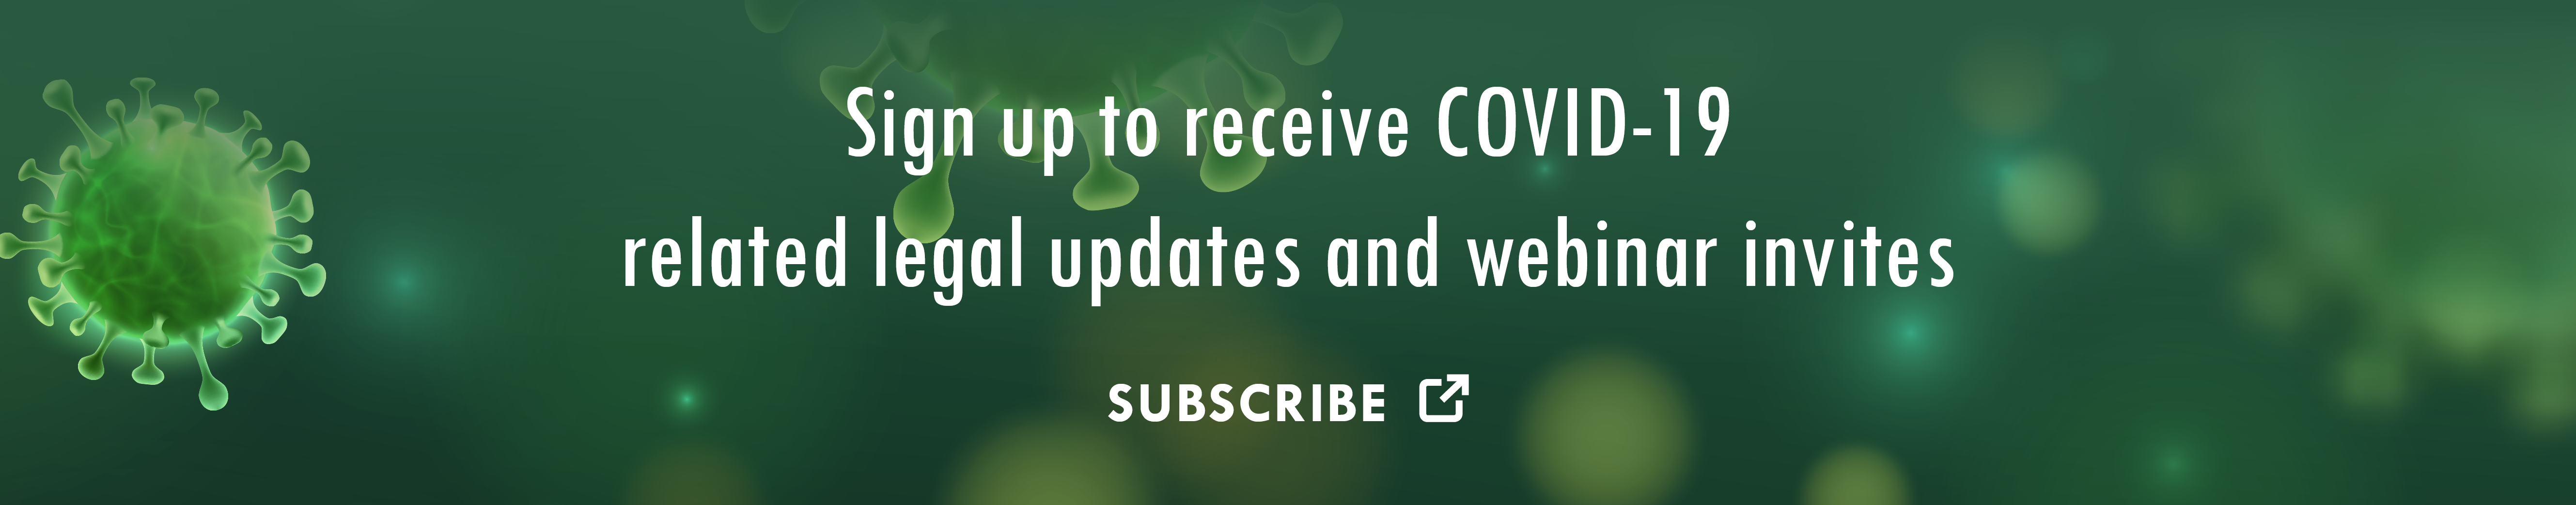 Sign up to receive COVID-19 updates and webinar invites